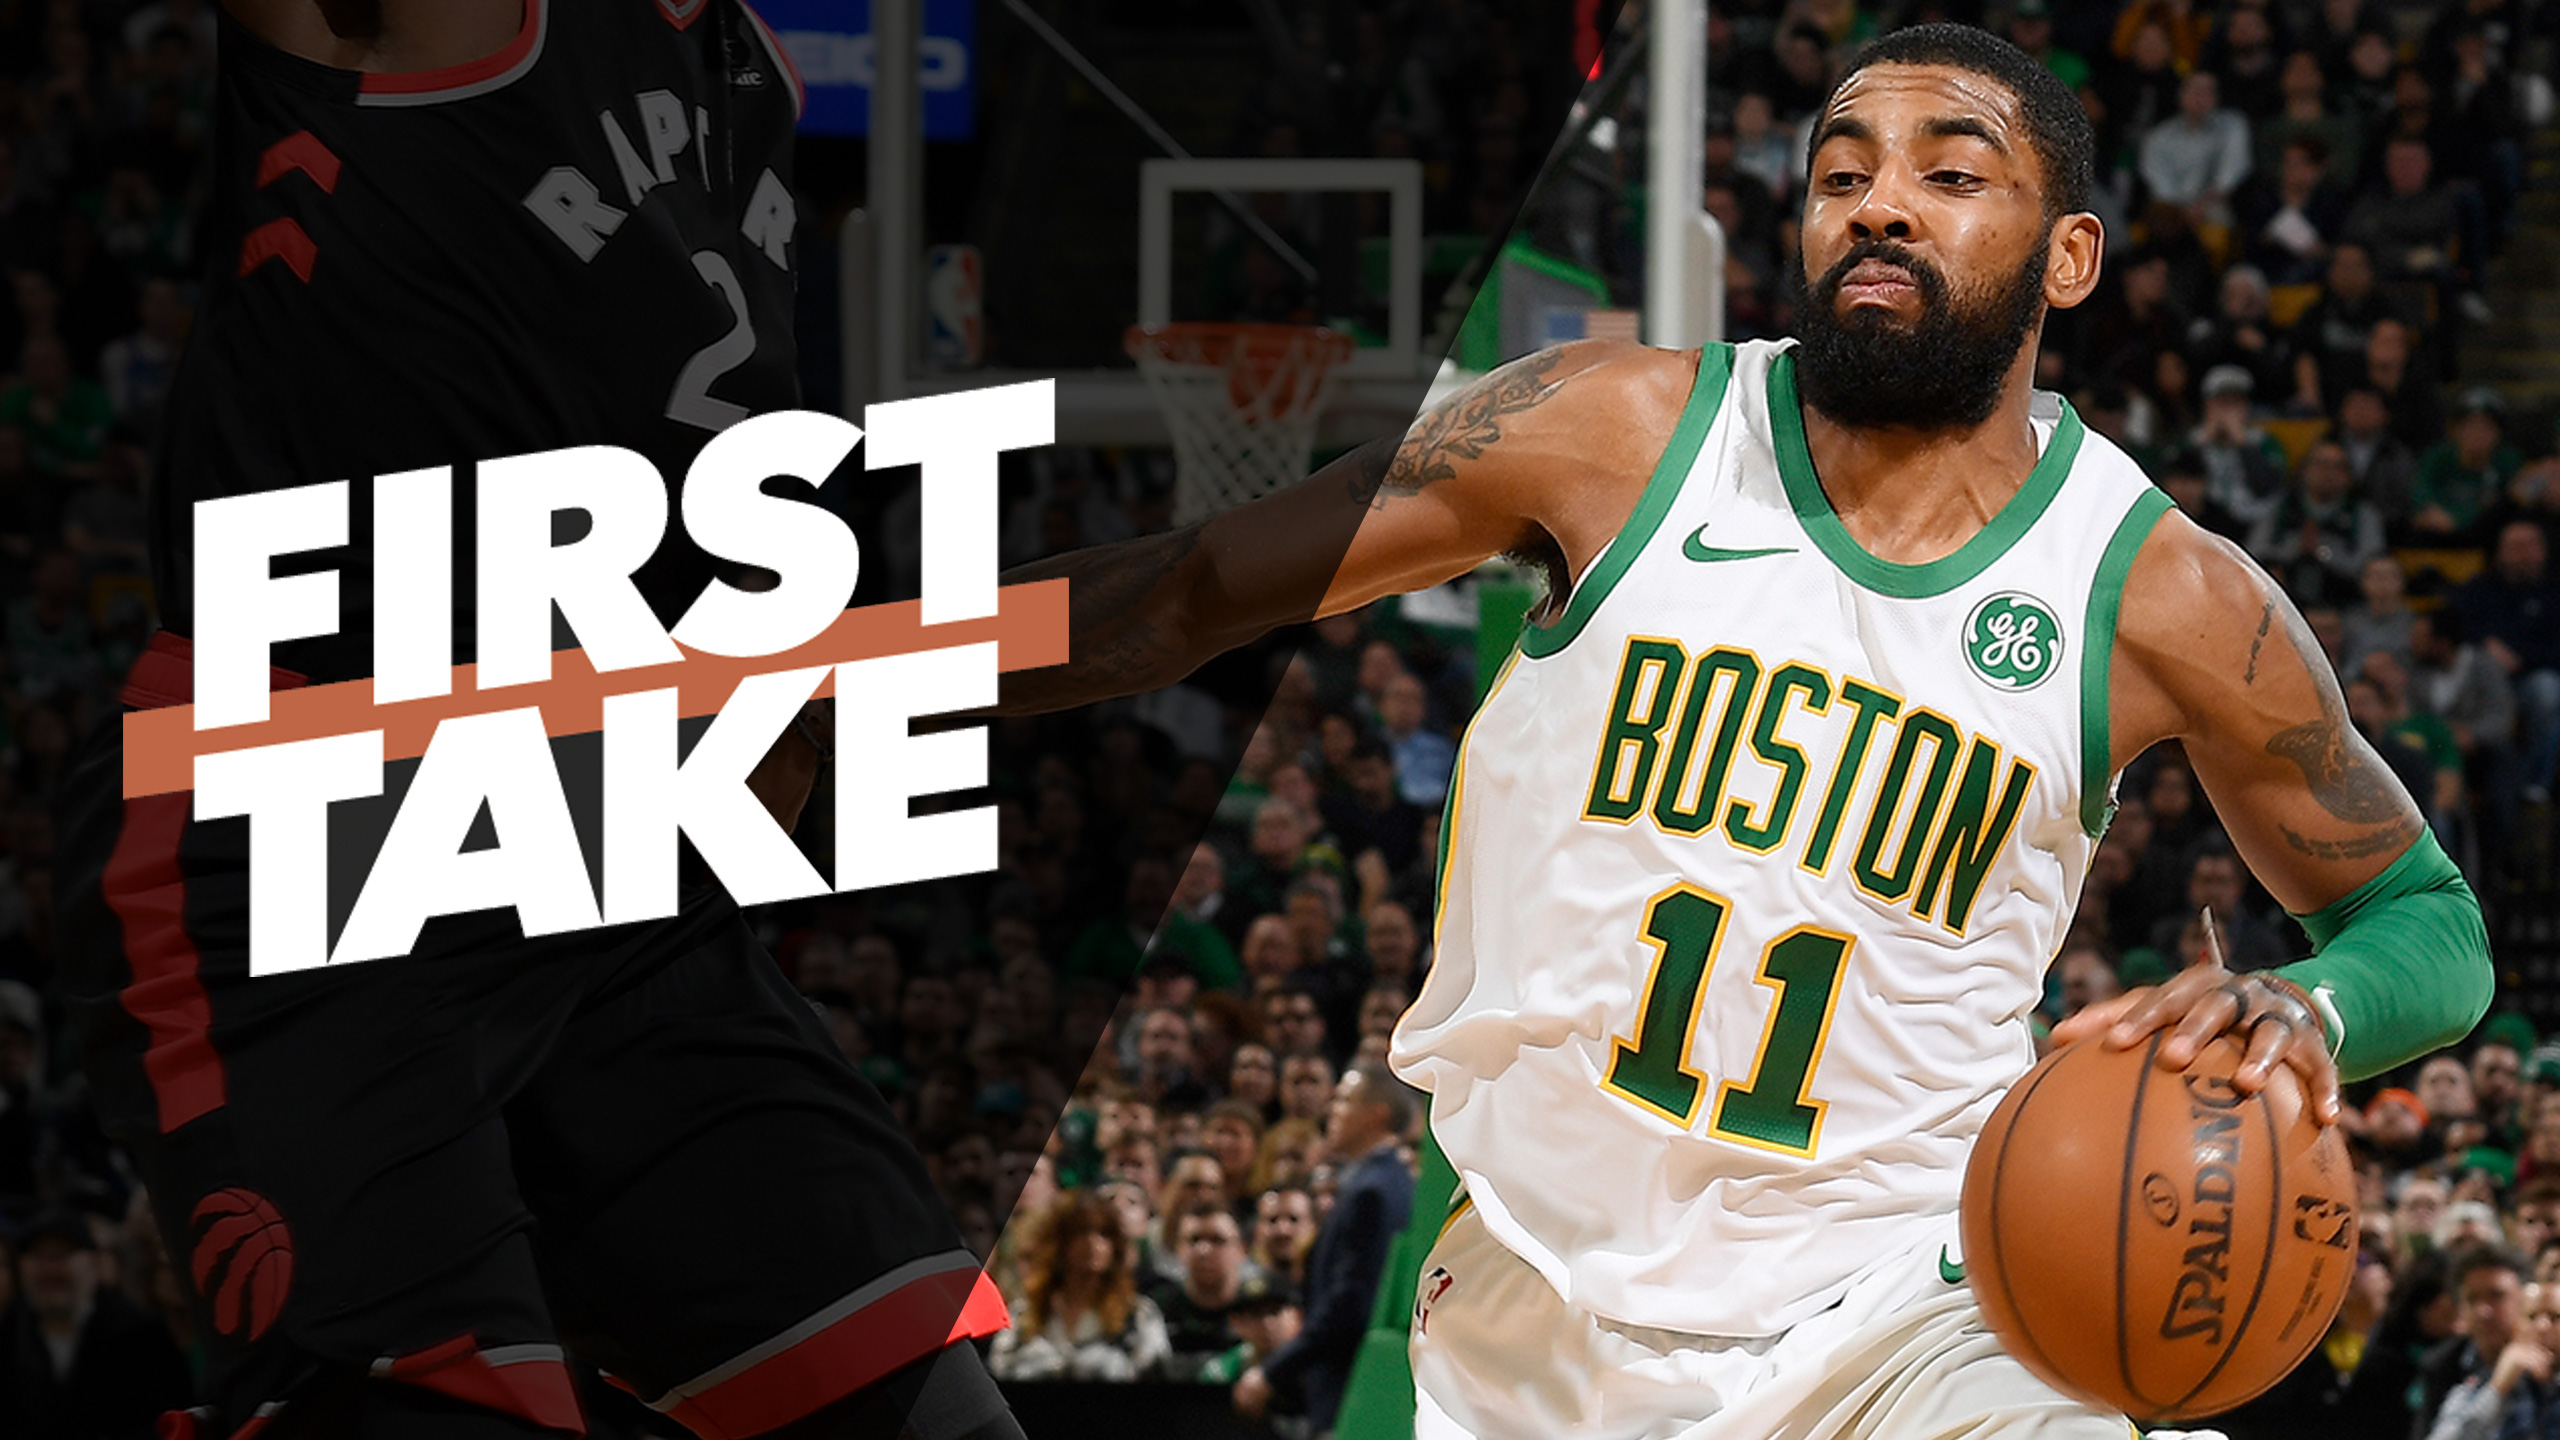 Thu, 1/17 - First Take